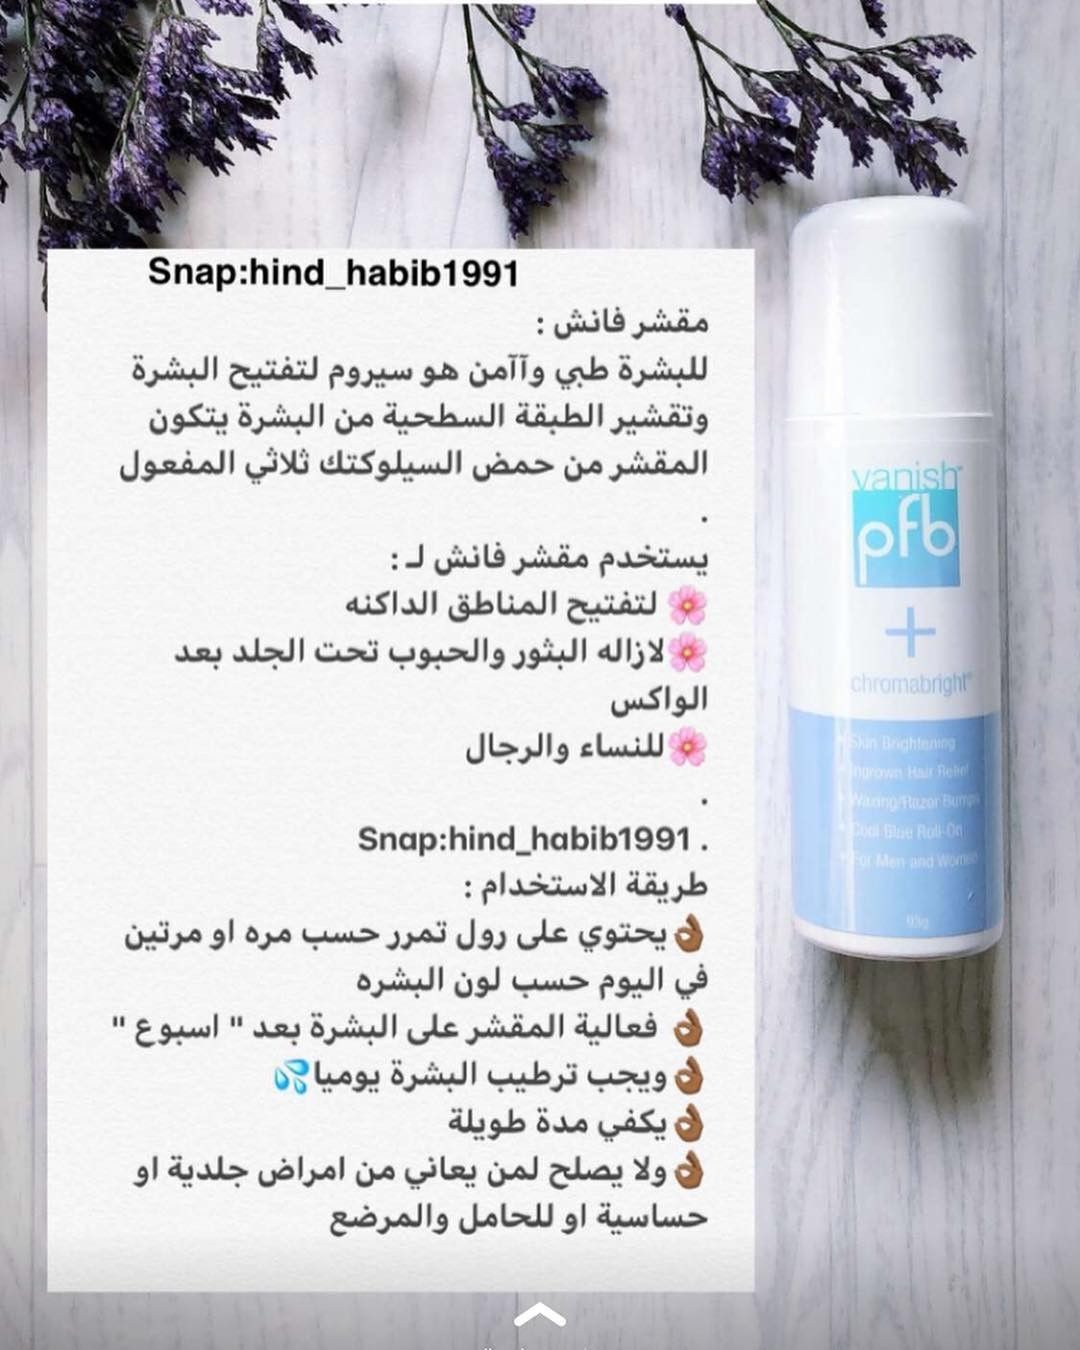 Pin By Zaaha 23 On للمنطقة الحساسة Recommended Skin Care Products Beauty Skin Care Routine Skin Care Business